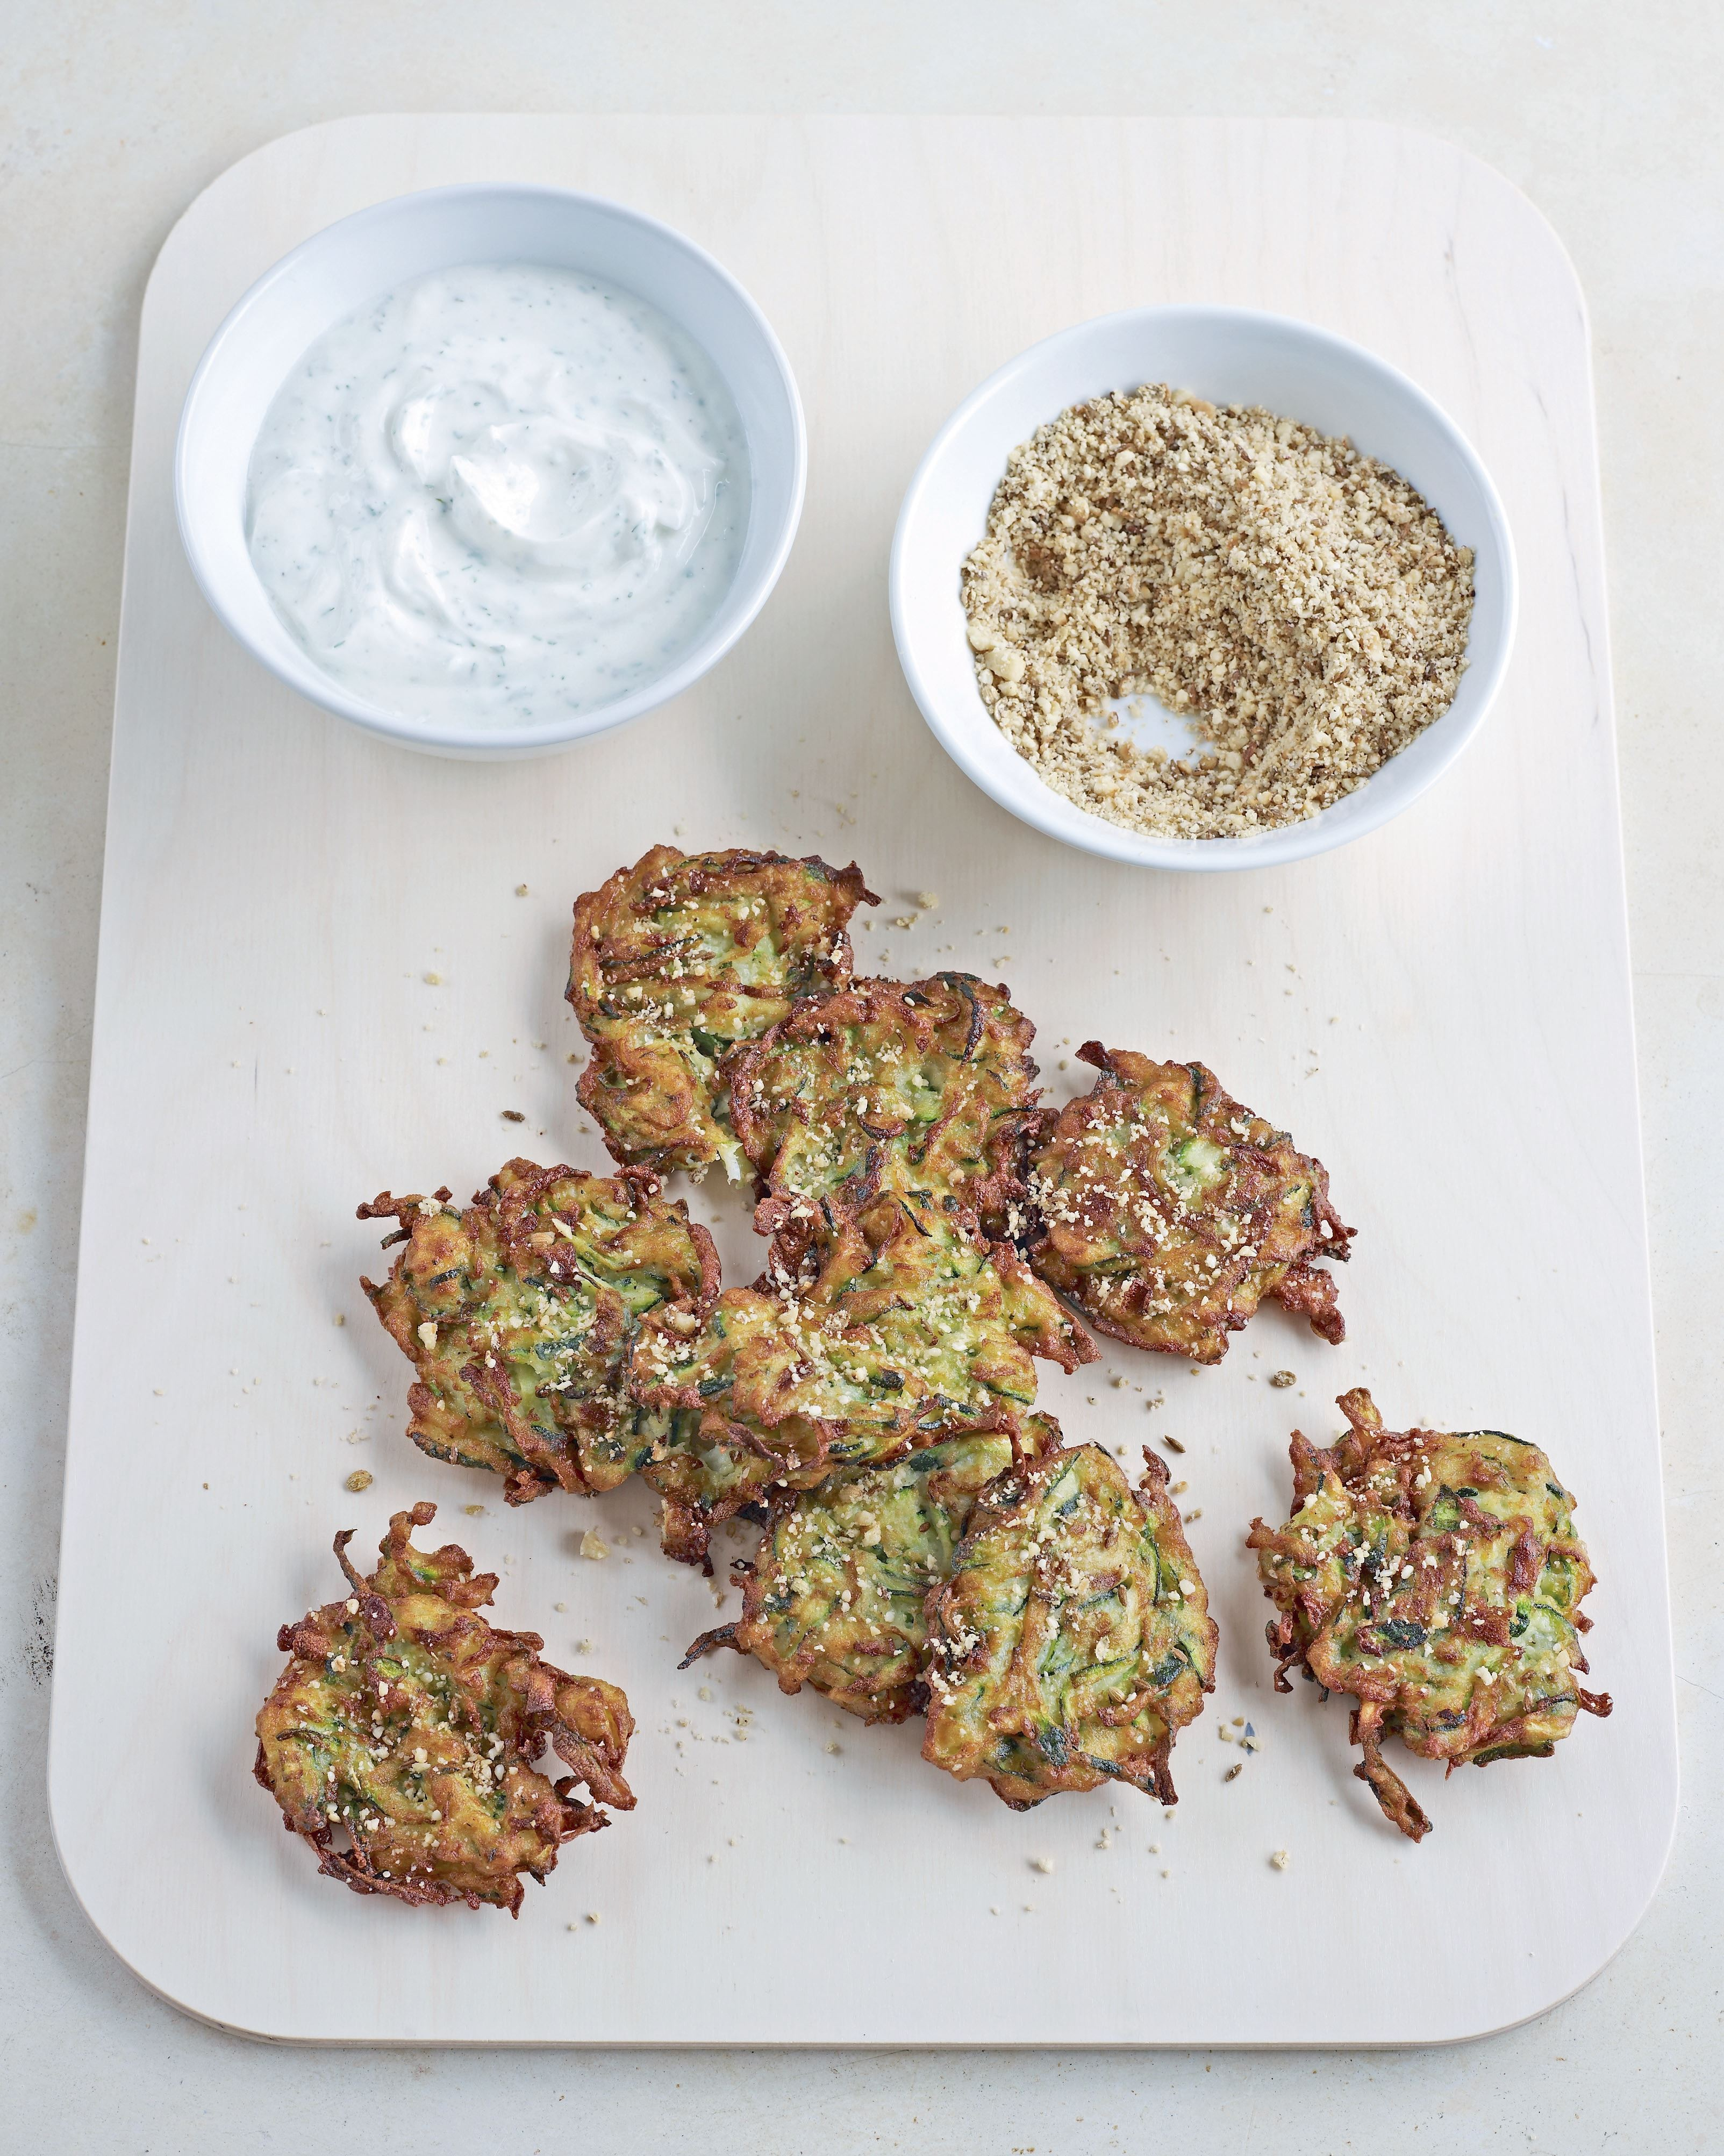 Courgette fritters with dukkah